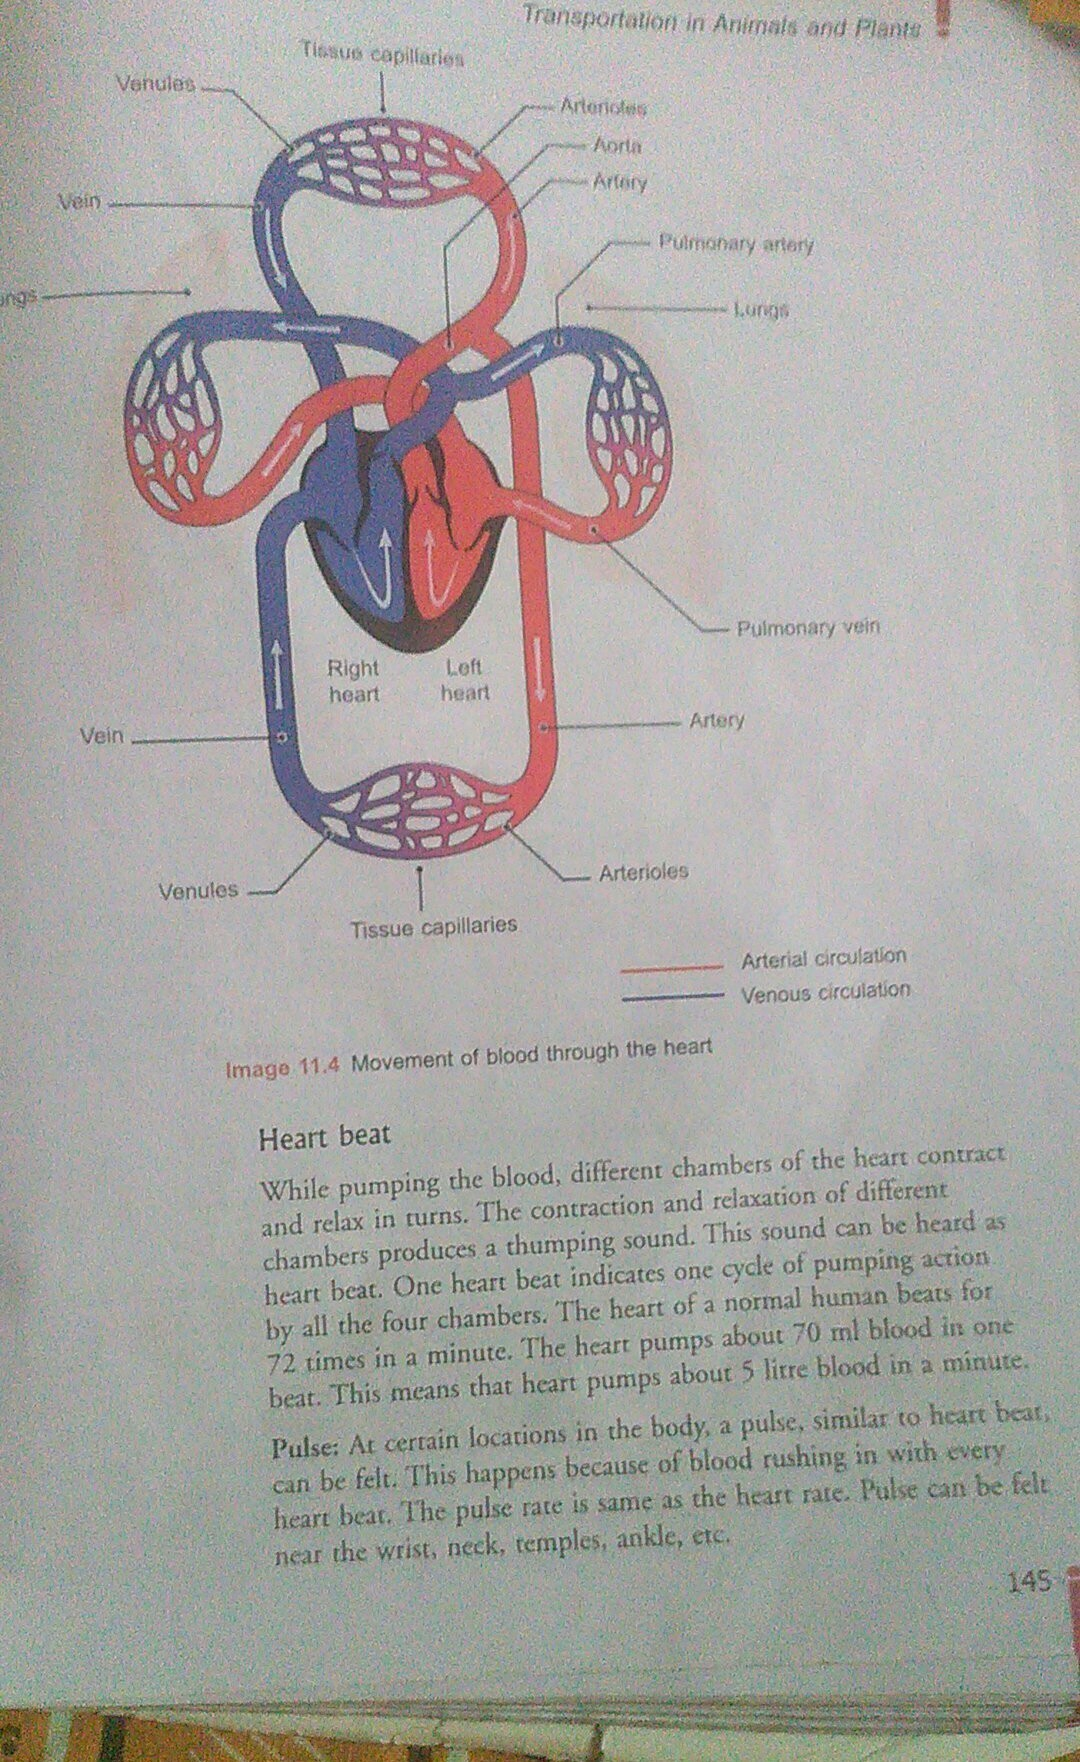 Explain All The Functions And Parts Of Heart With Suitable Diagram